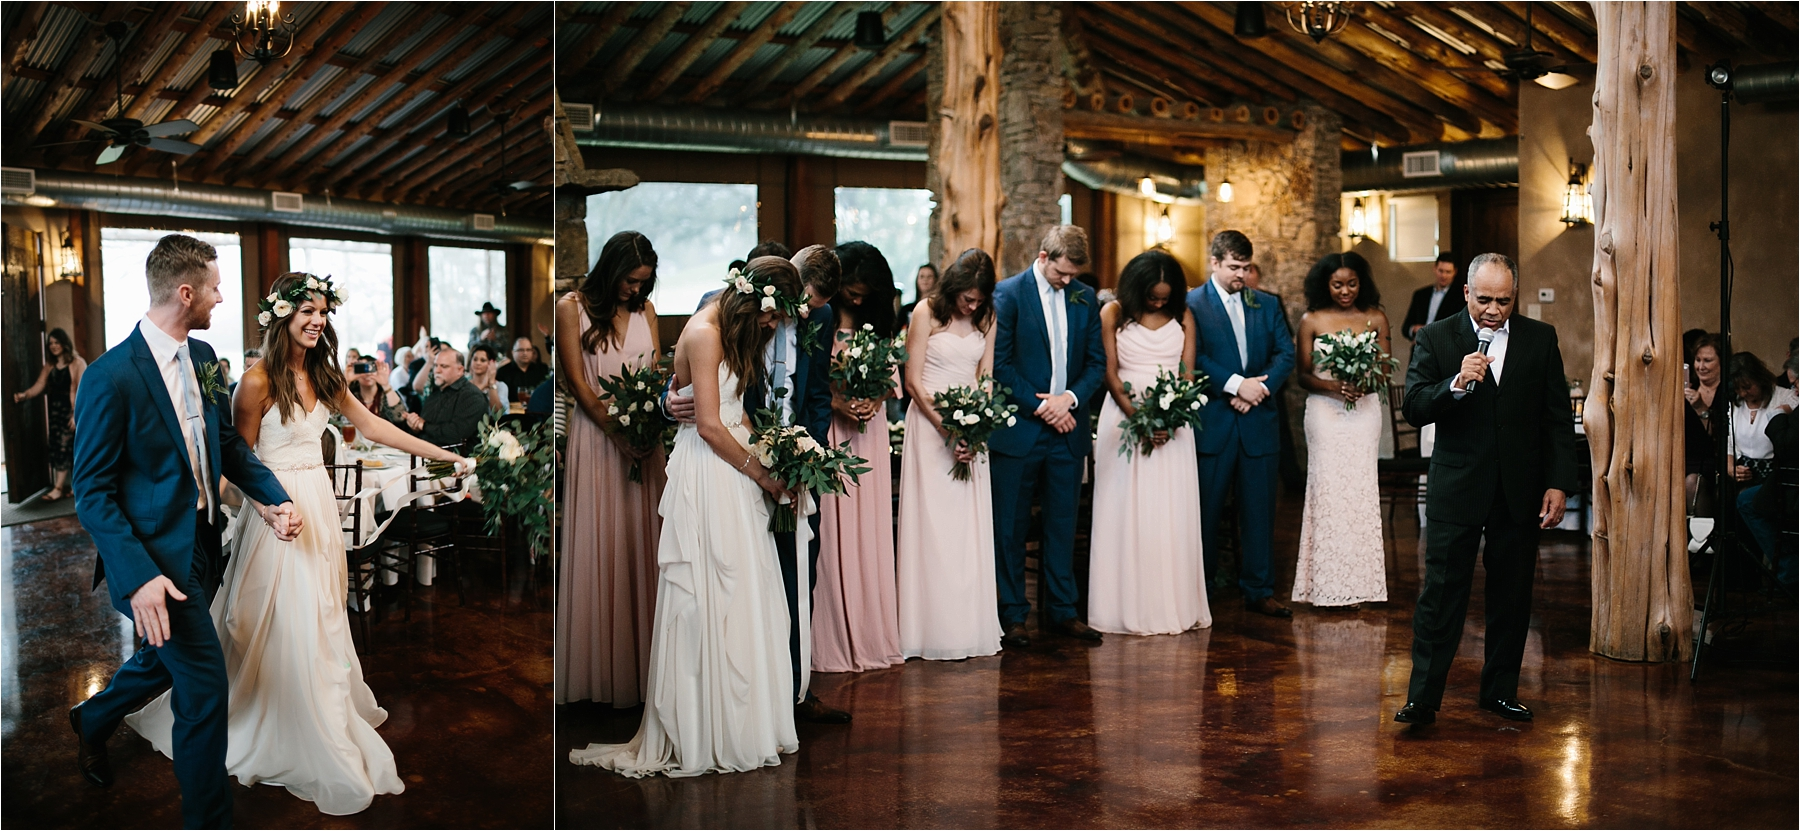 Lauren + Matt __ an intimate, emotional, blush pink, navy blue, and greenery toned wedding accents at the Brooks at Weatherford by North Texas Wedding Photographer Rachel Meagan Photography152